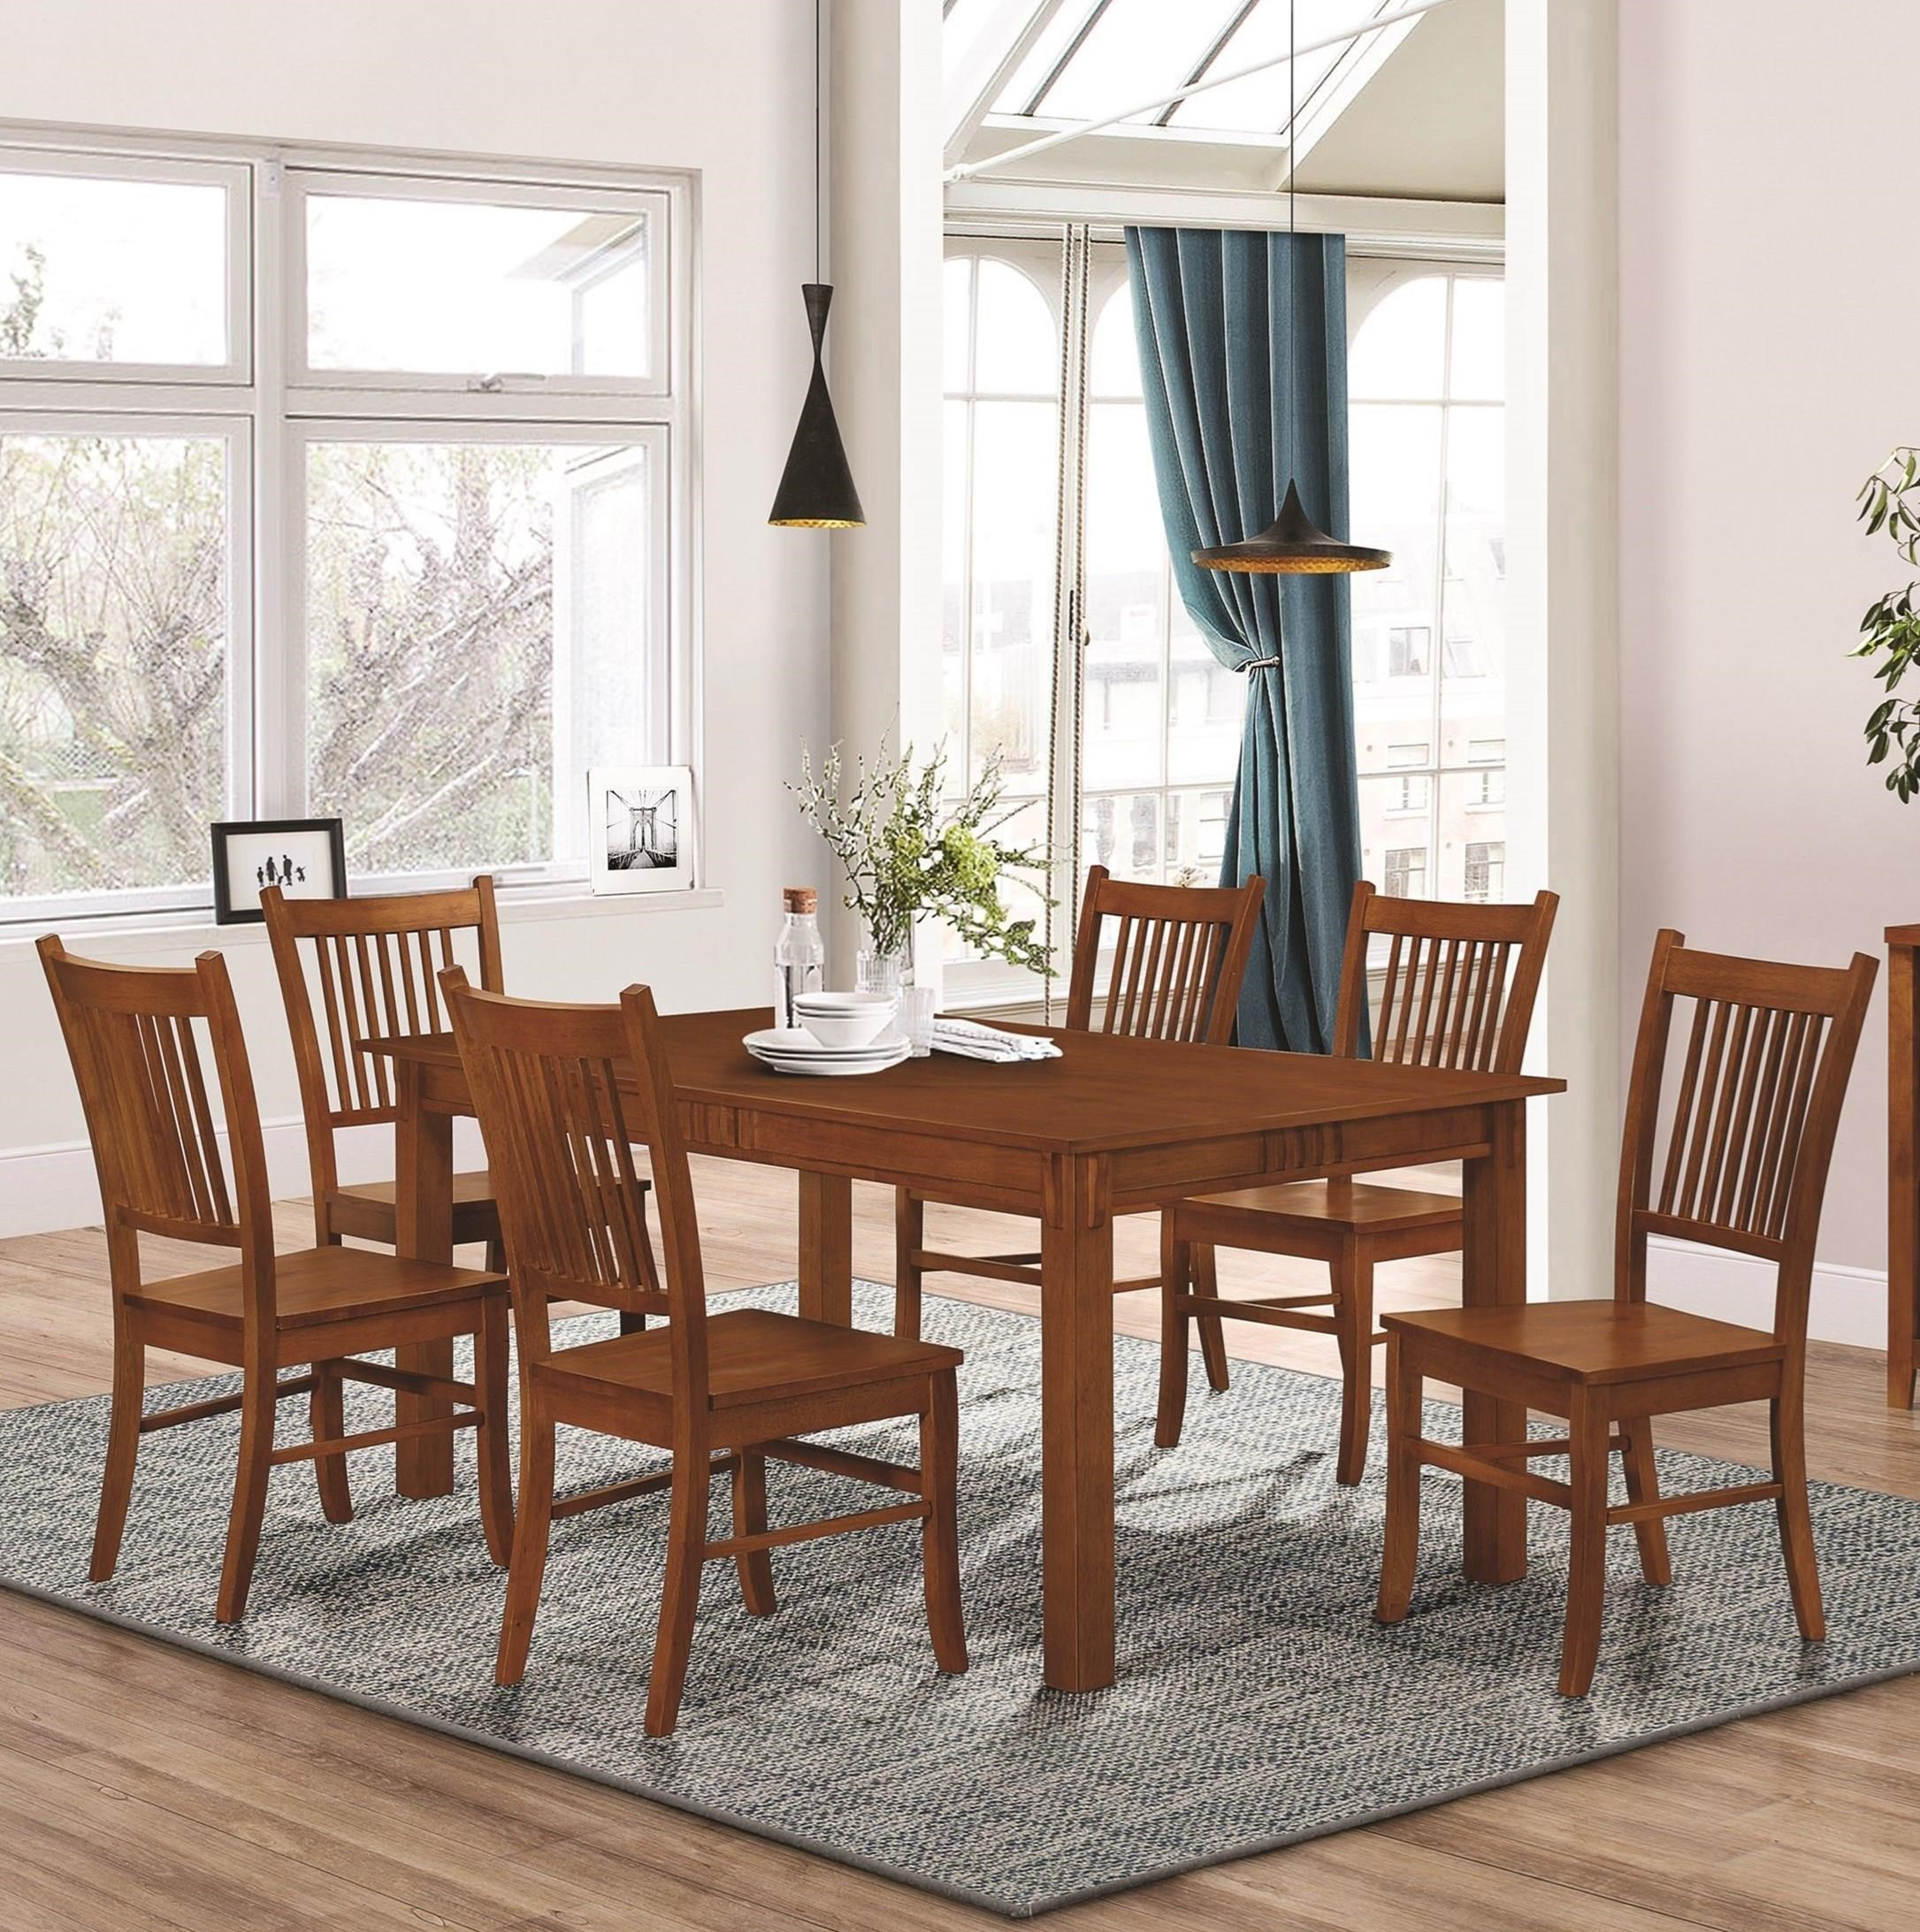 Marbrisa 7 Piece Dining Set by Coaster at Rooms for Less